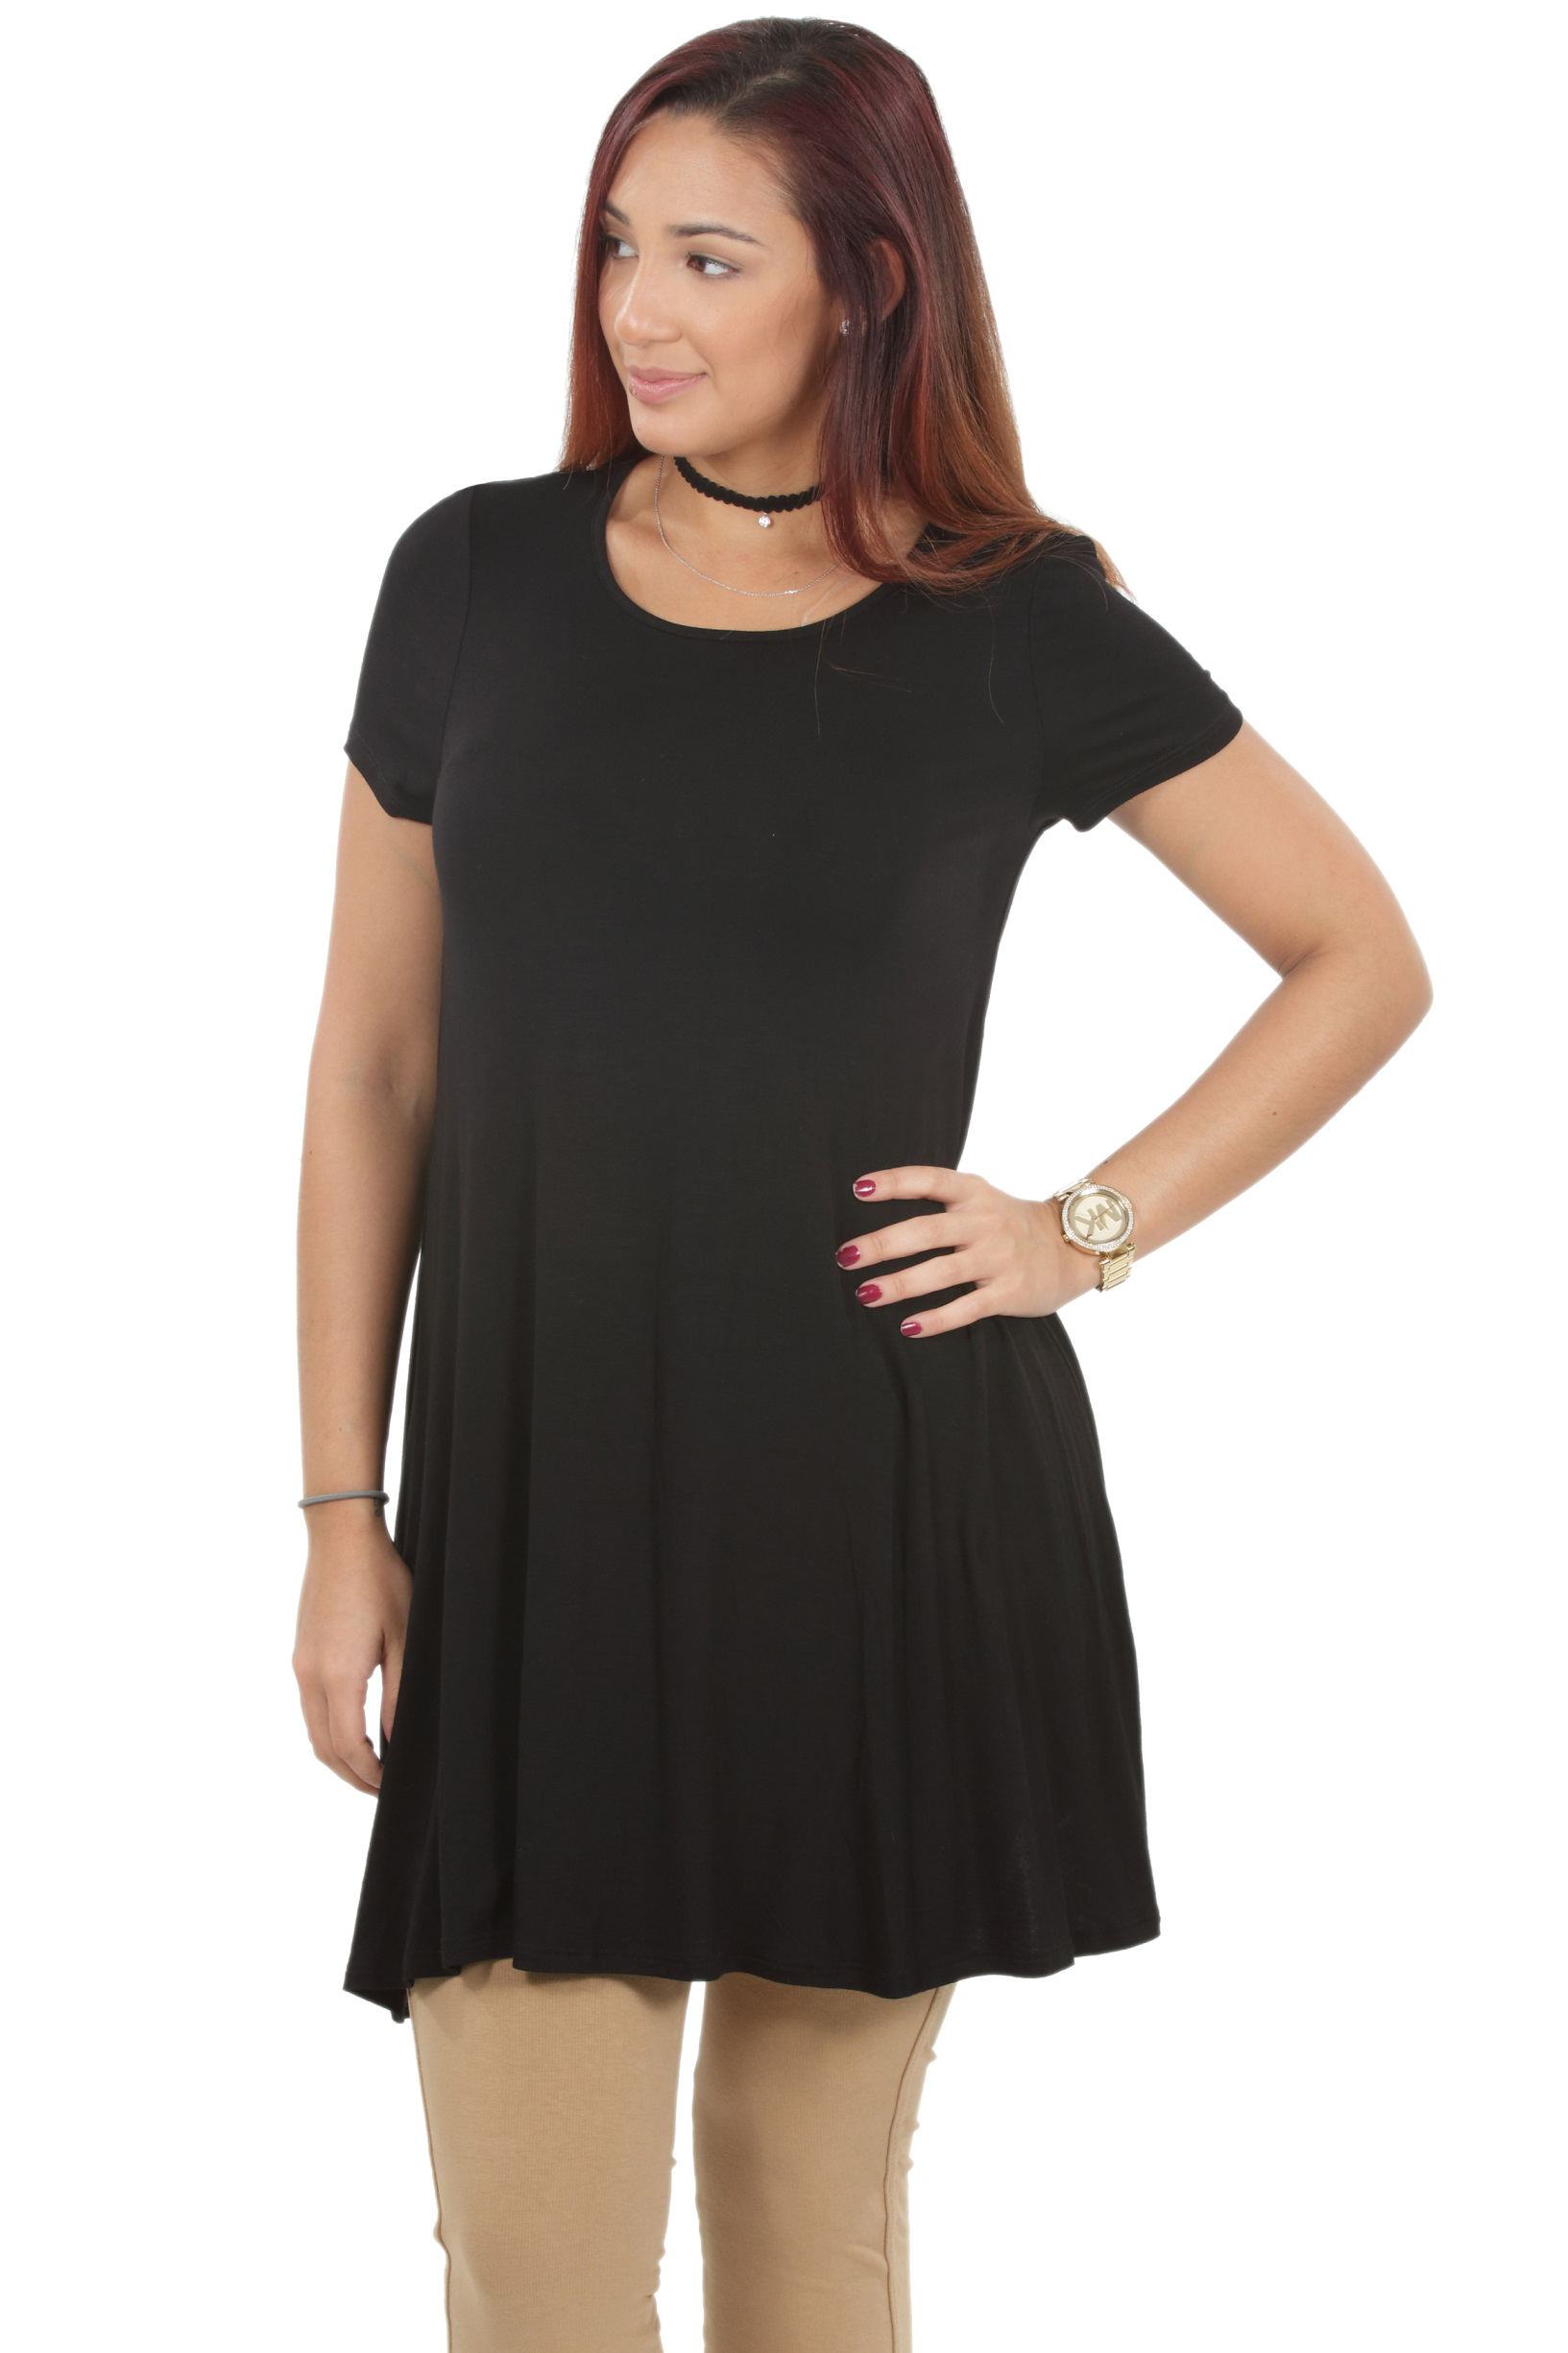 RS1043-Women-039-s-Short-Sleeve-Flare-Hem-Loose-Fit-Round-Neck-Dress-Tunic-Top thumbnail 8